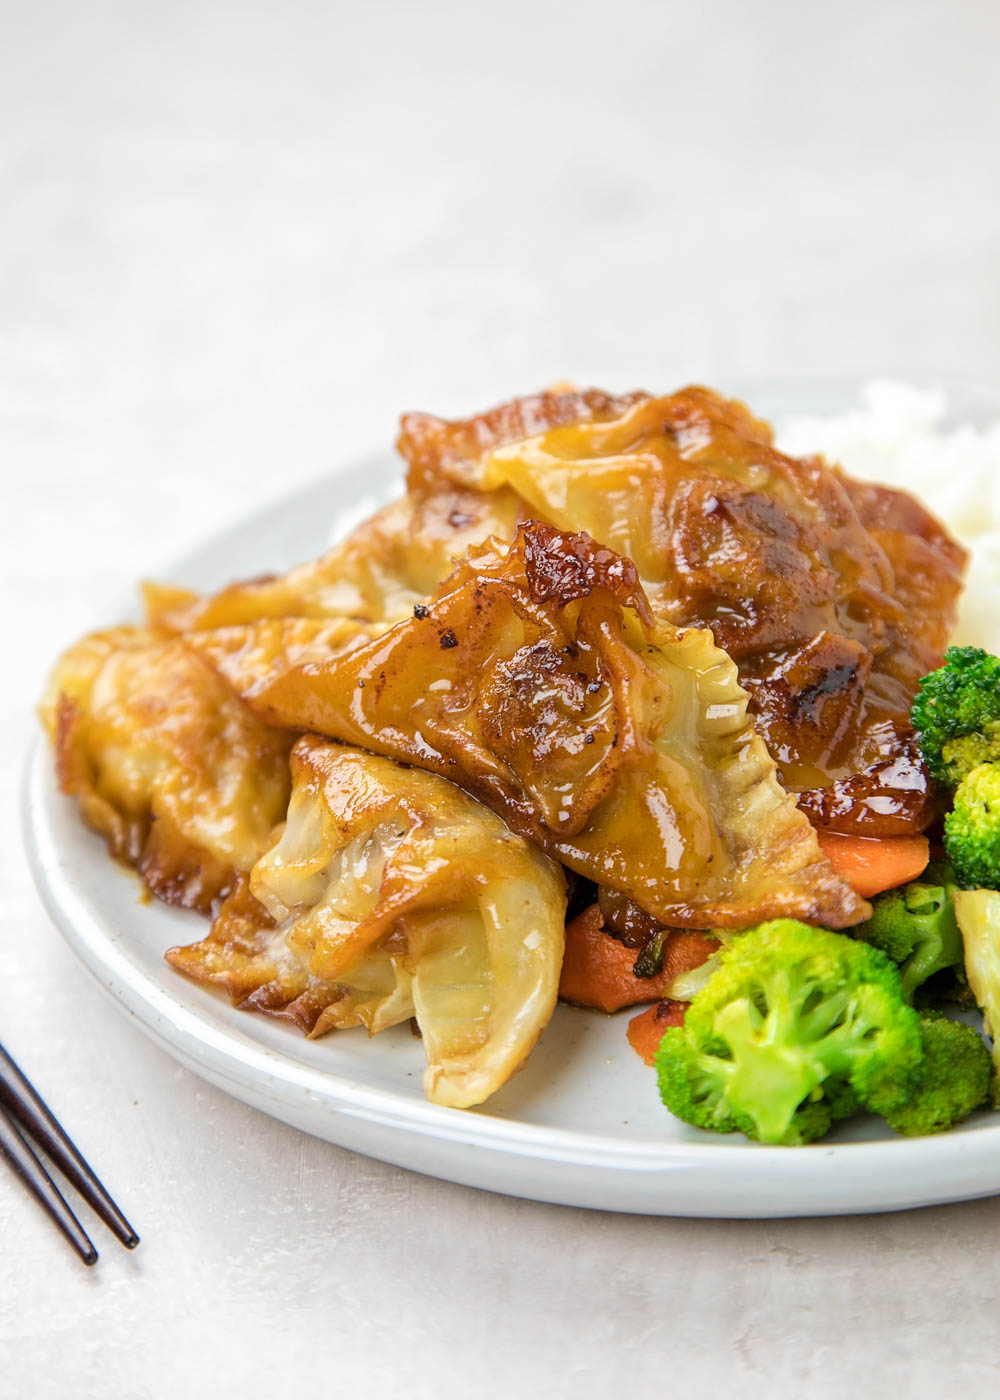 Potstickers on a plate with rice and vegetables